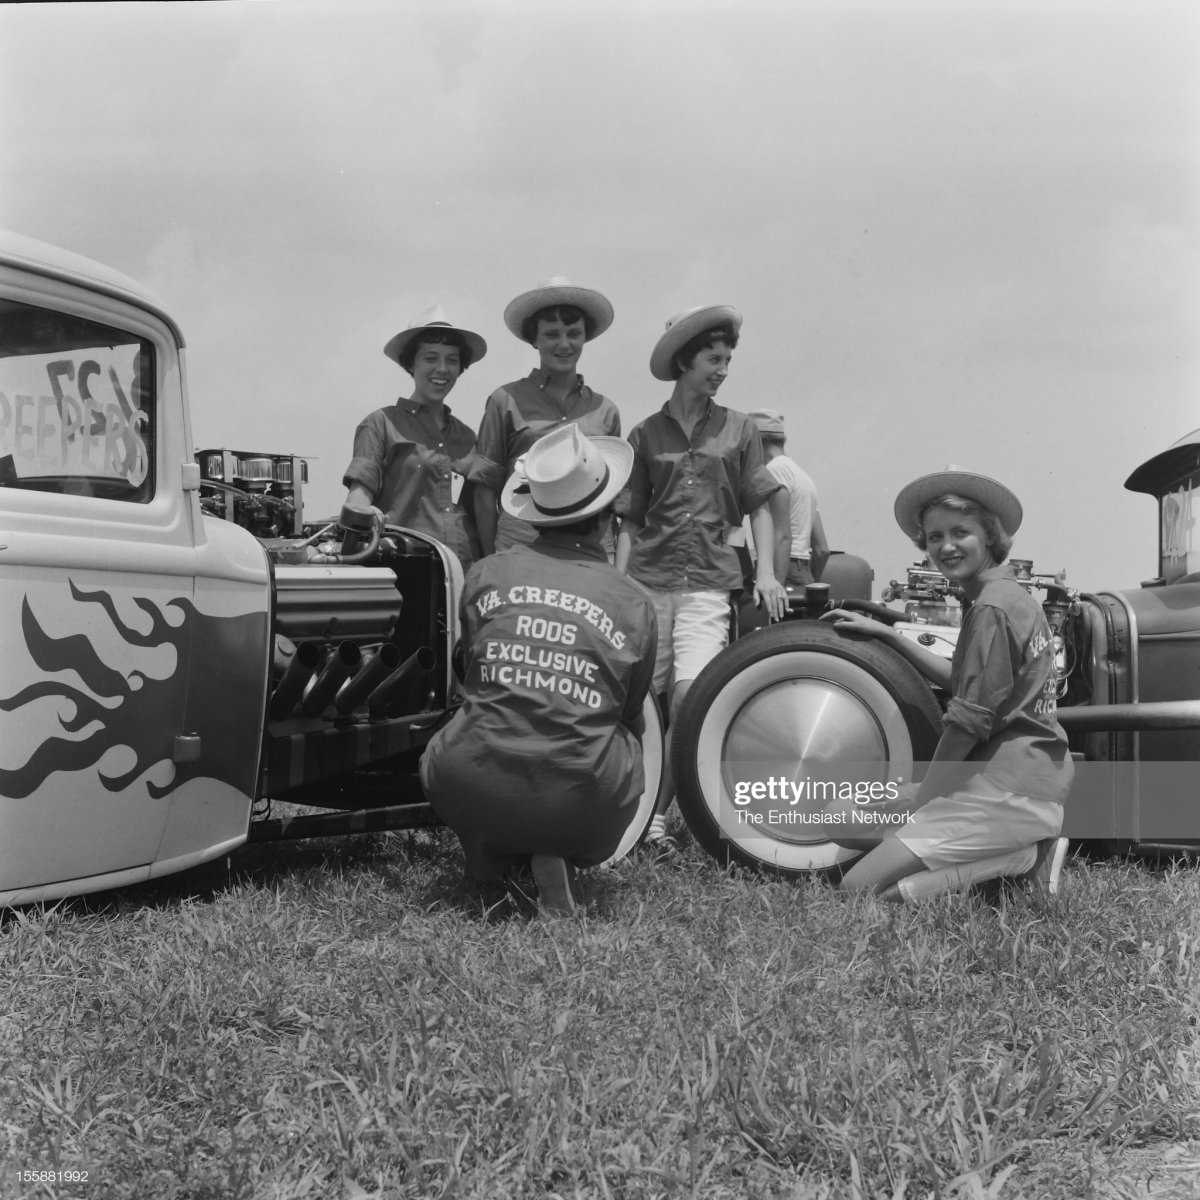 75 1958 Virginia Drags. Th.jpg